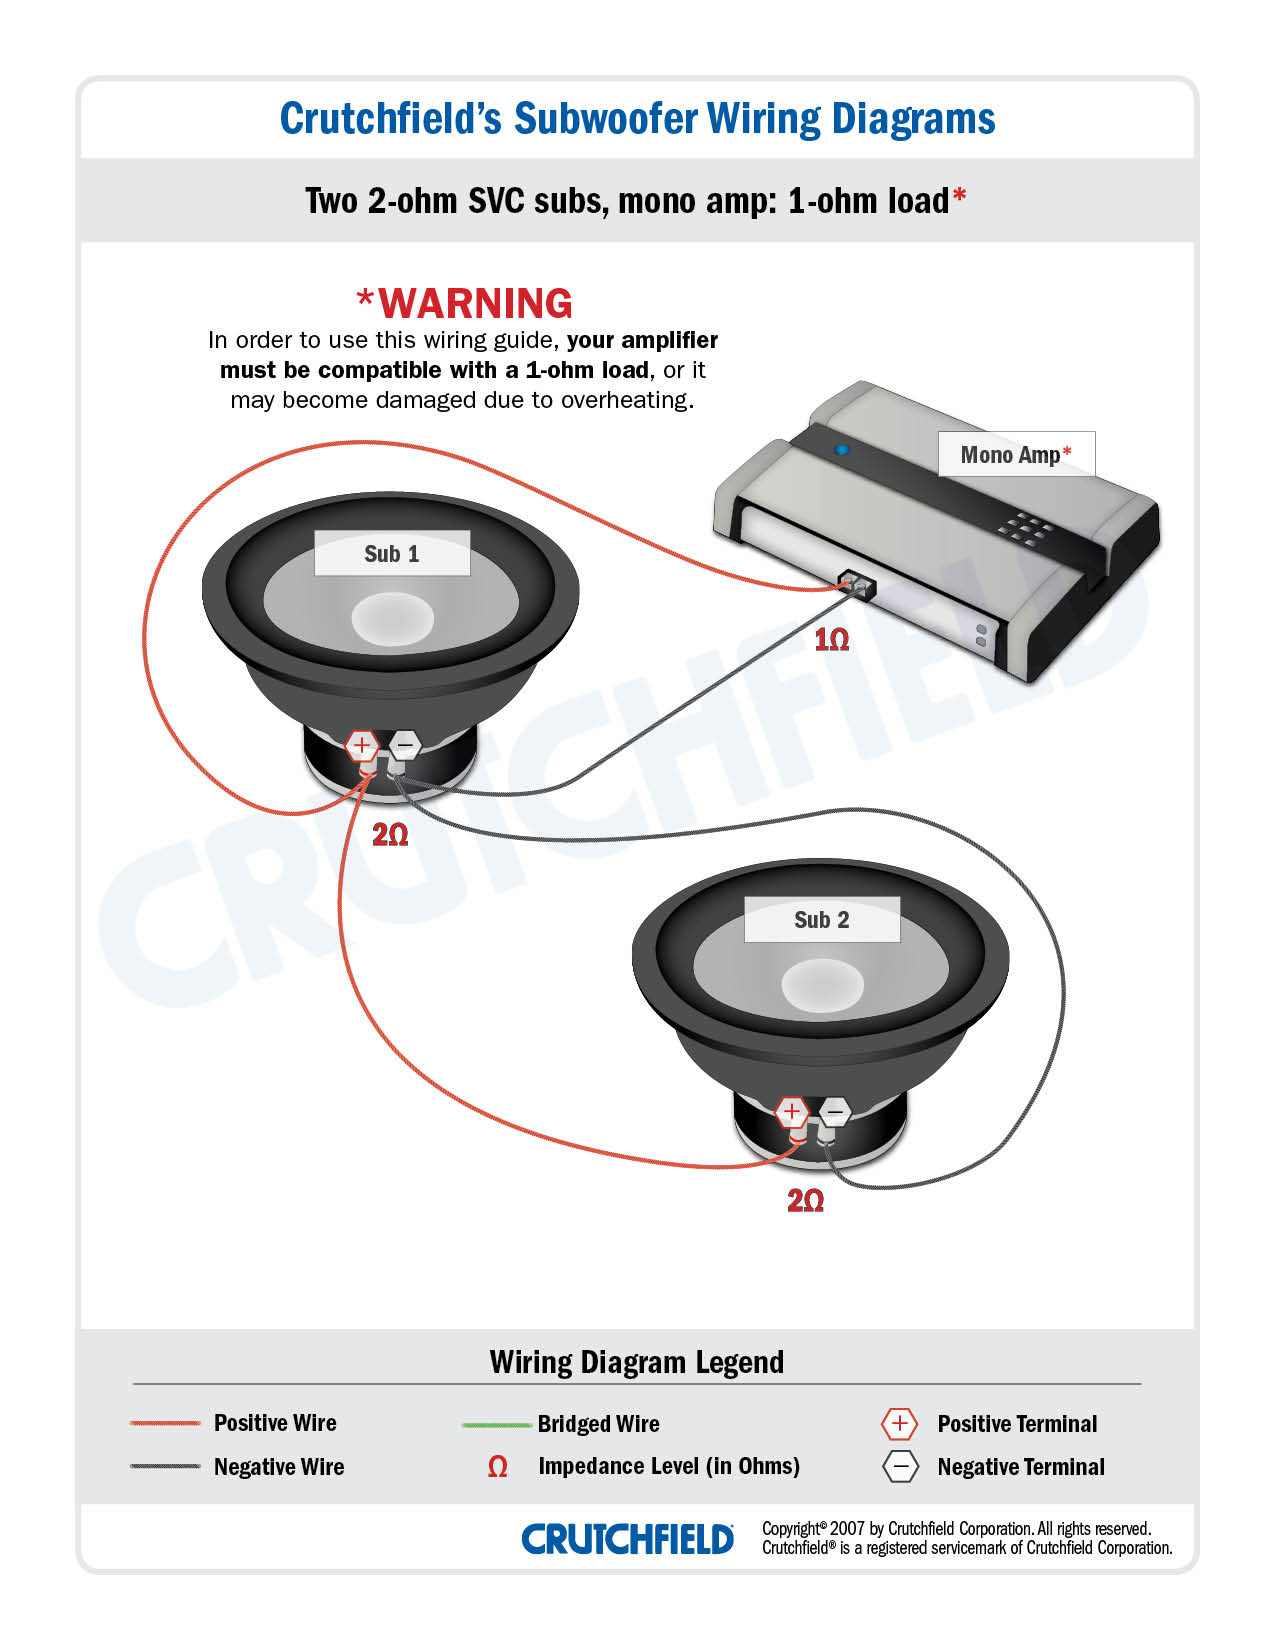 Parallel Wiring 4 Ohm Subs - Wiring Diagram Write on dual voice coil diagram, dvc 1 ohm wire diagram, dvc subwoofer wiring diagram, crutchfield subwoofer wiring diagram, 2 ohm subwoofer wiring diagram,